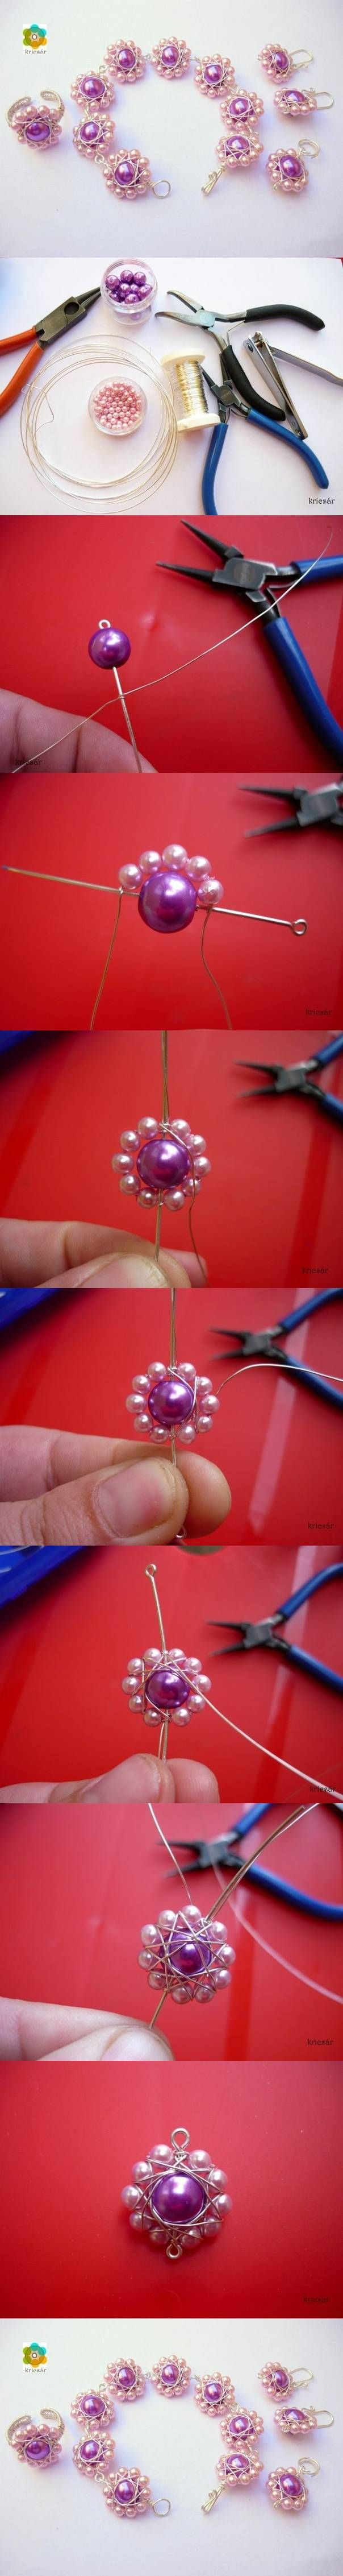 DIY Bead Flower... I like the style, but definitely would use more casual styled beads....